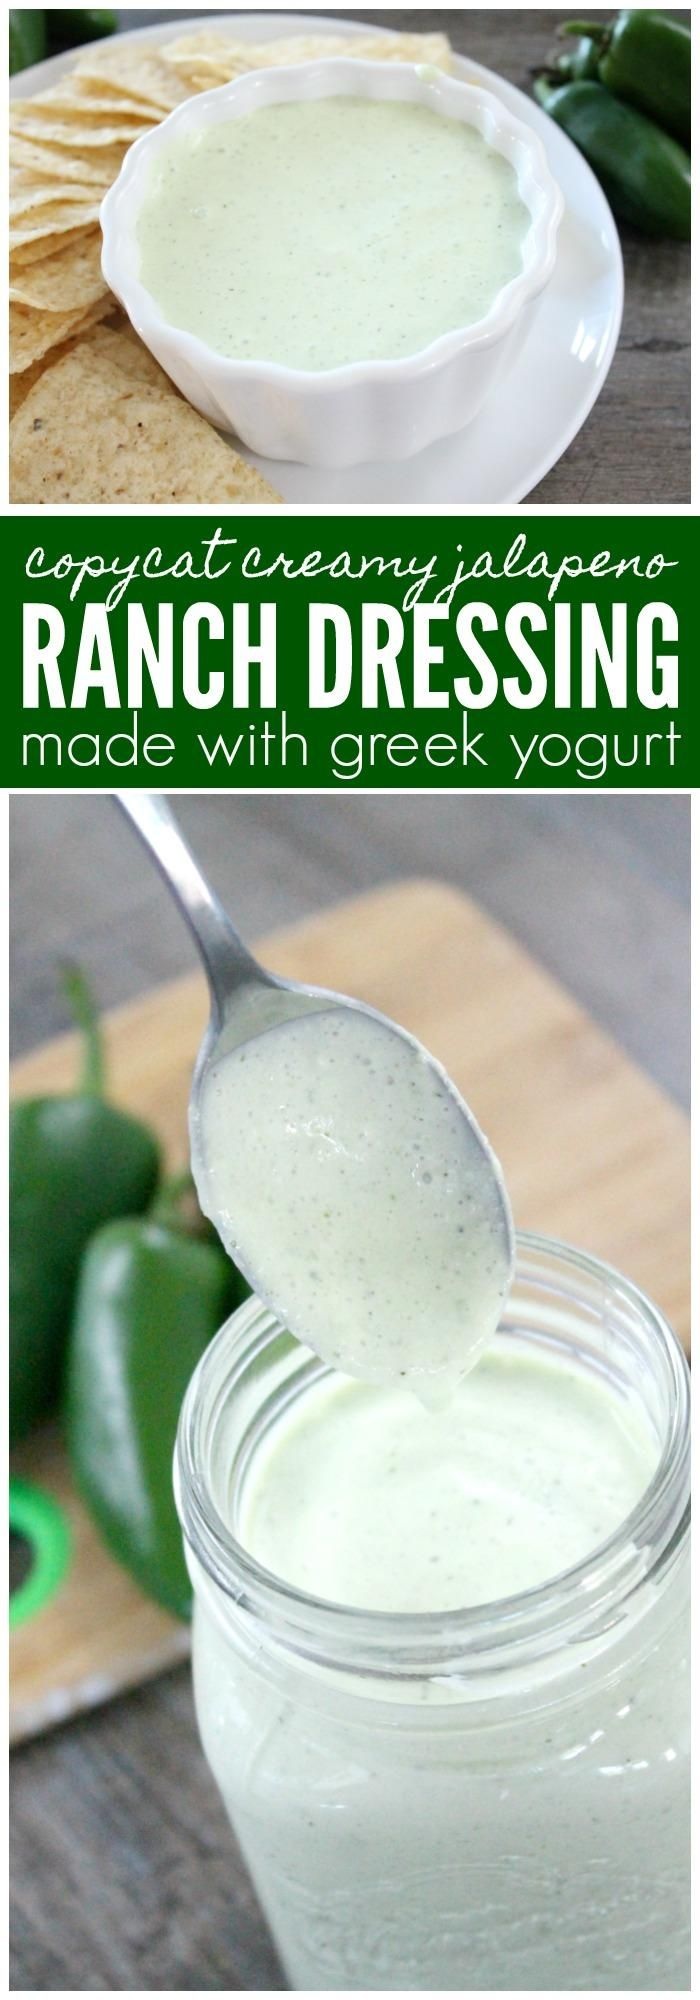 Creamy Jalapeno Ranch Dressing Recipe Made with Greek Yogurt, Keto Friendly & the perfect high protein dip for any party!